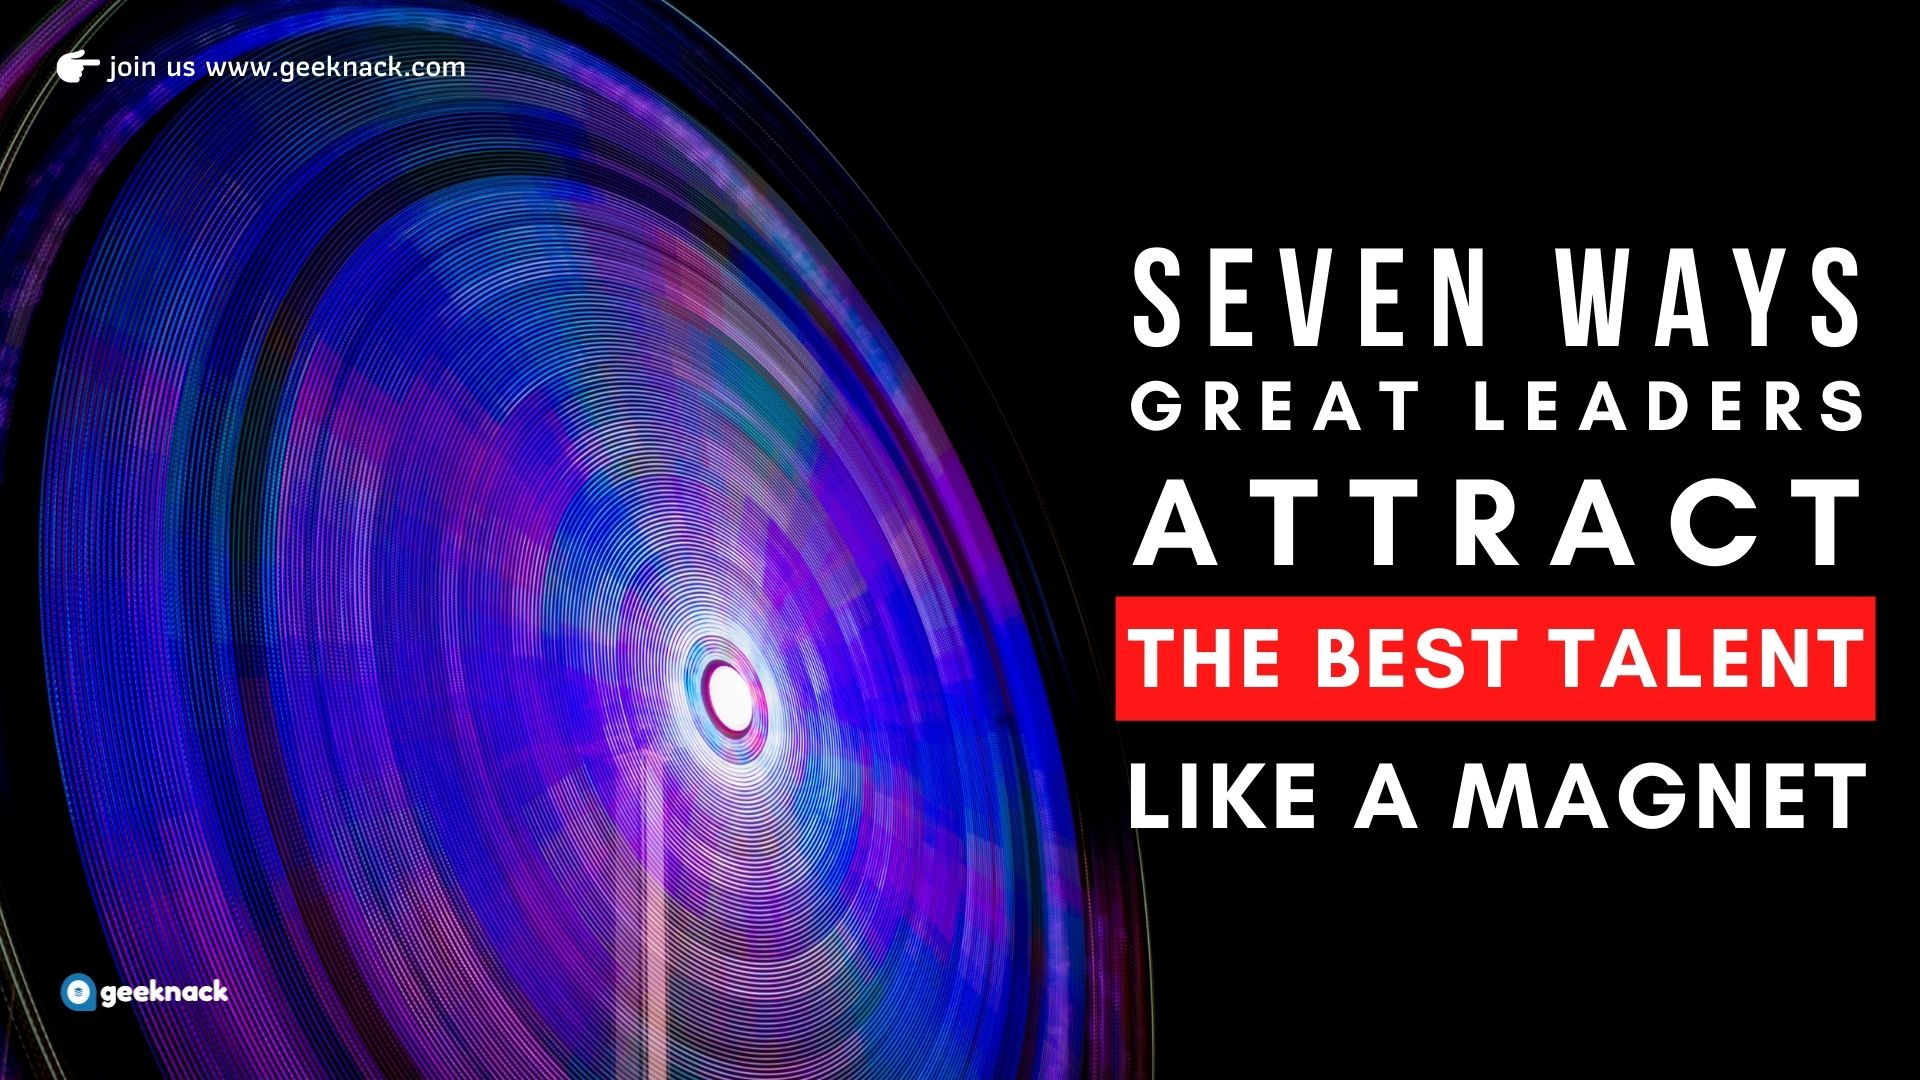 Seven Ways Great Leaders Attract The Best Talent Like a Magnet cover